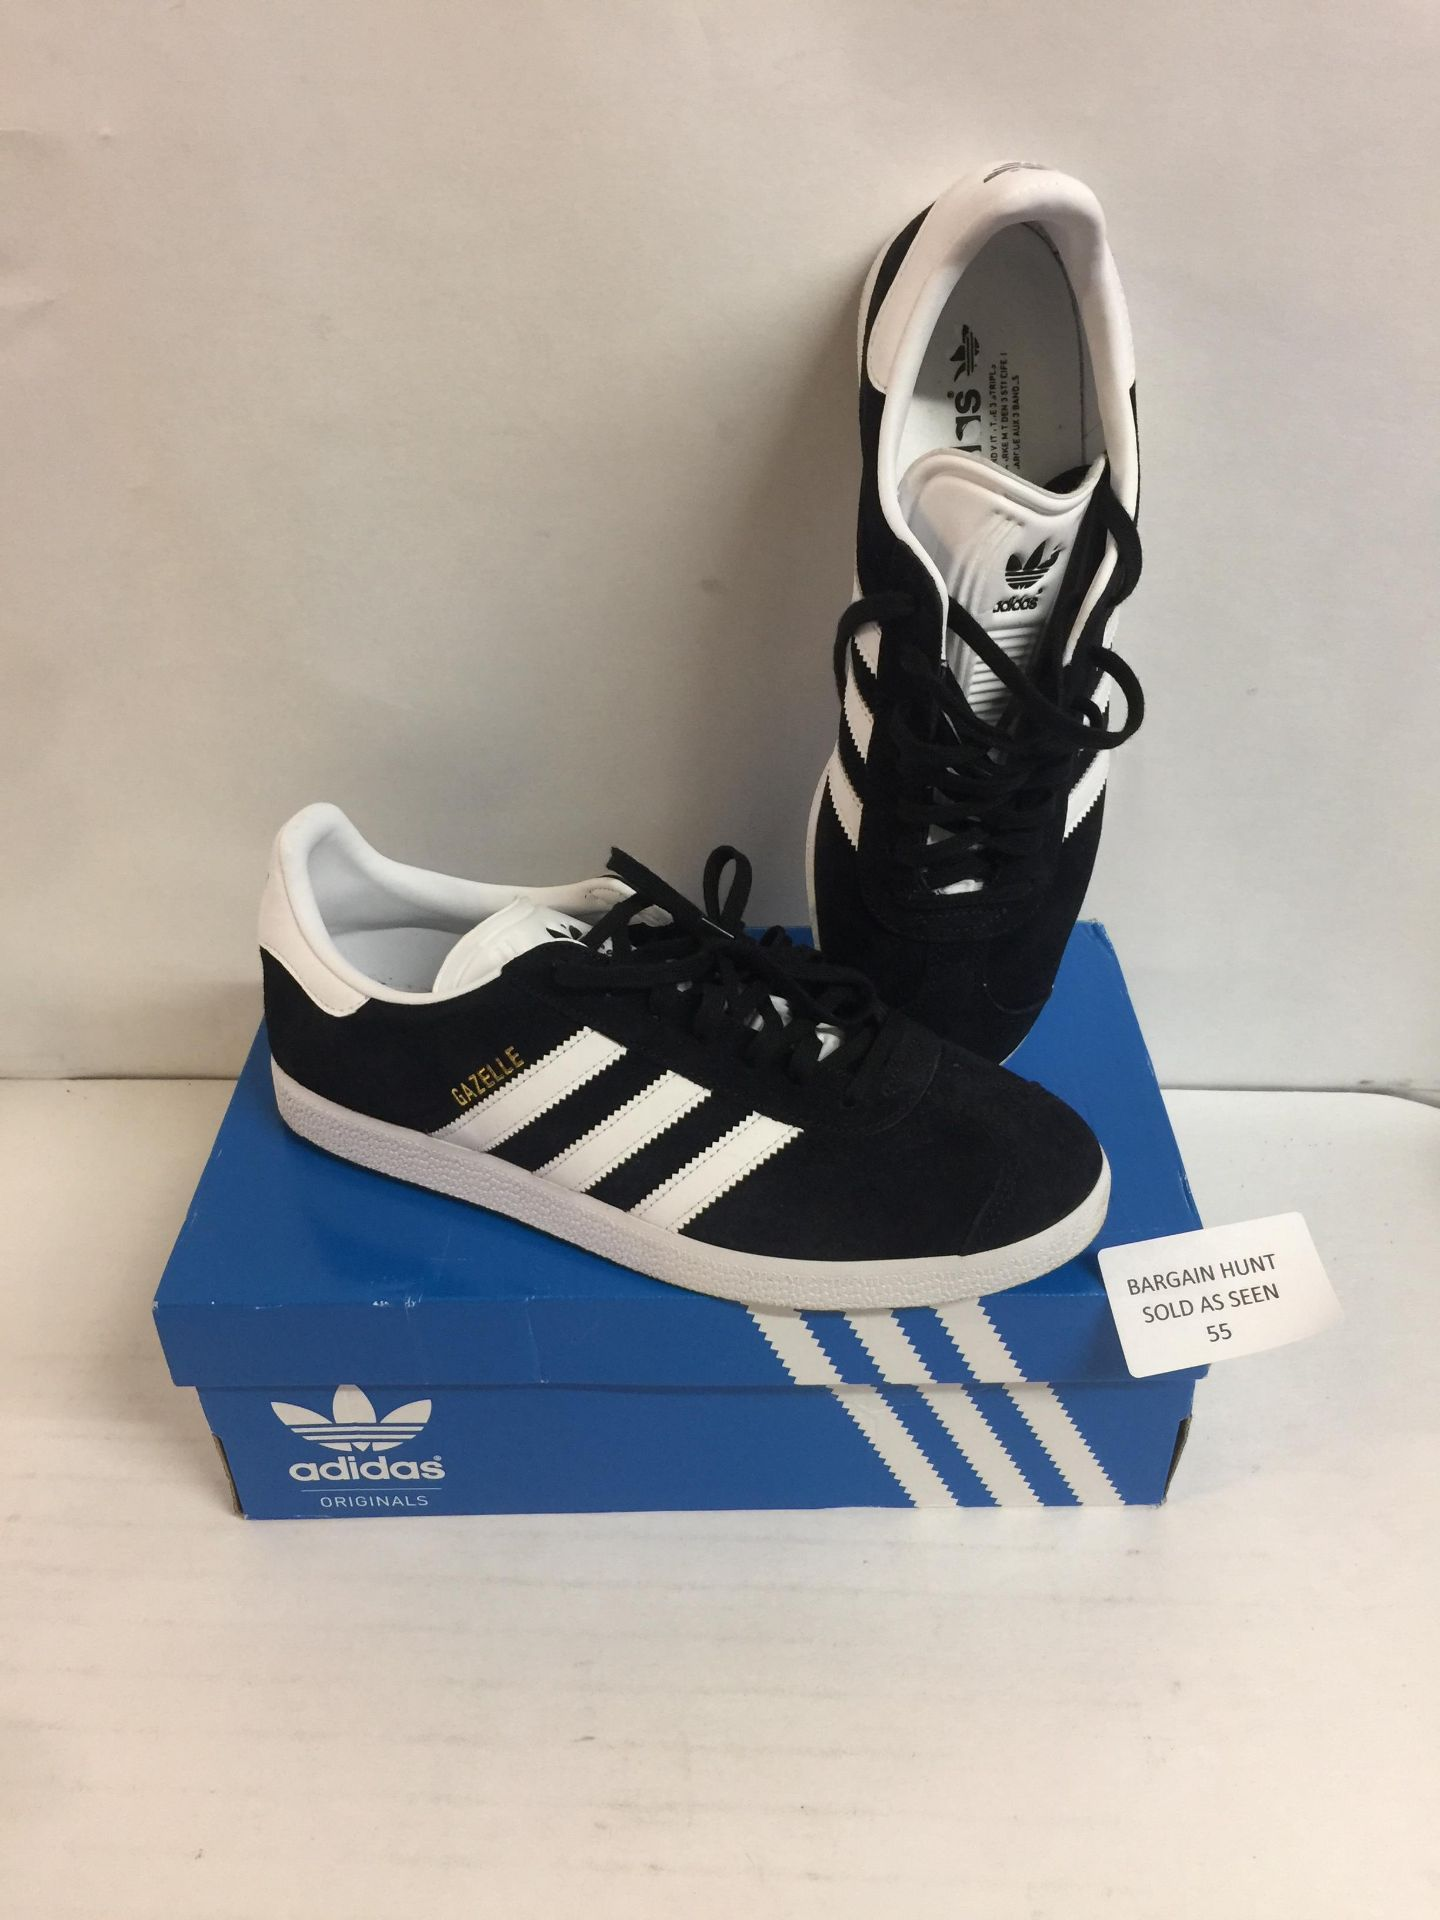 Lot 55 - Adidas Men's Gazelle Multisport Outdoor Shoes, 8 UK